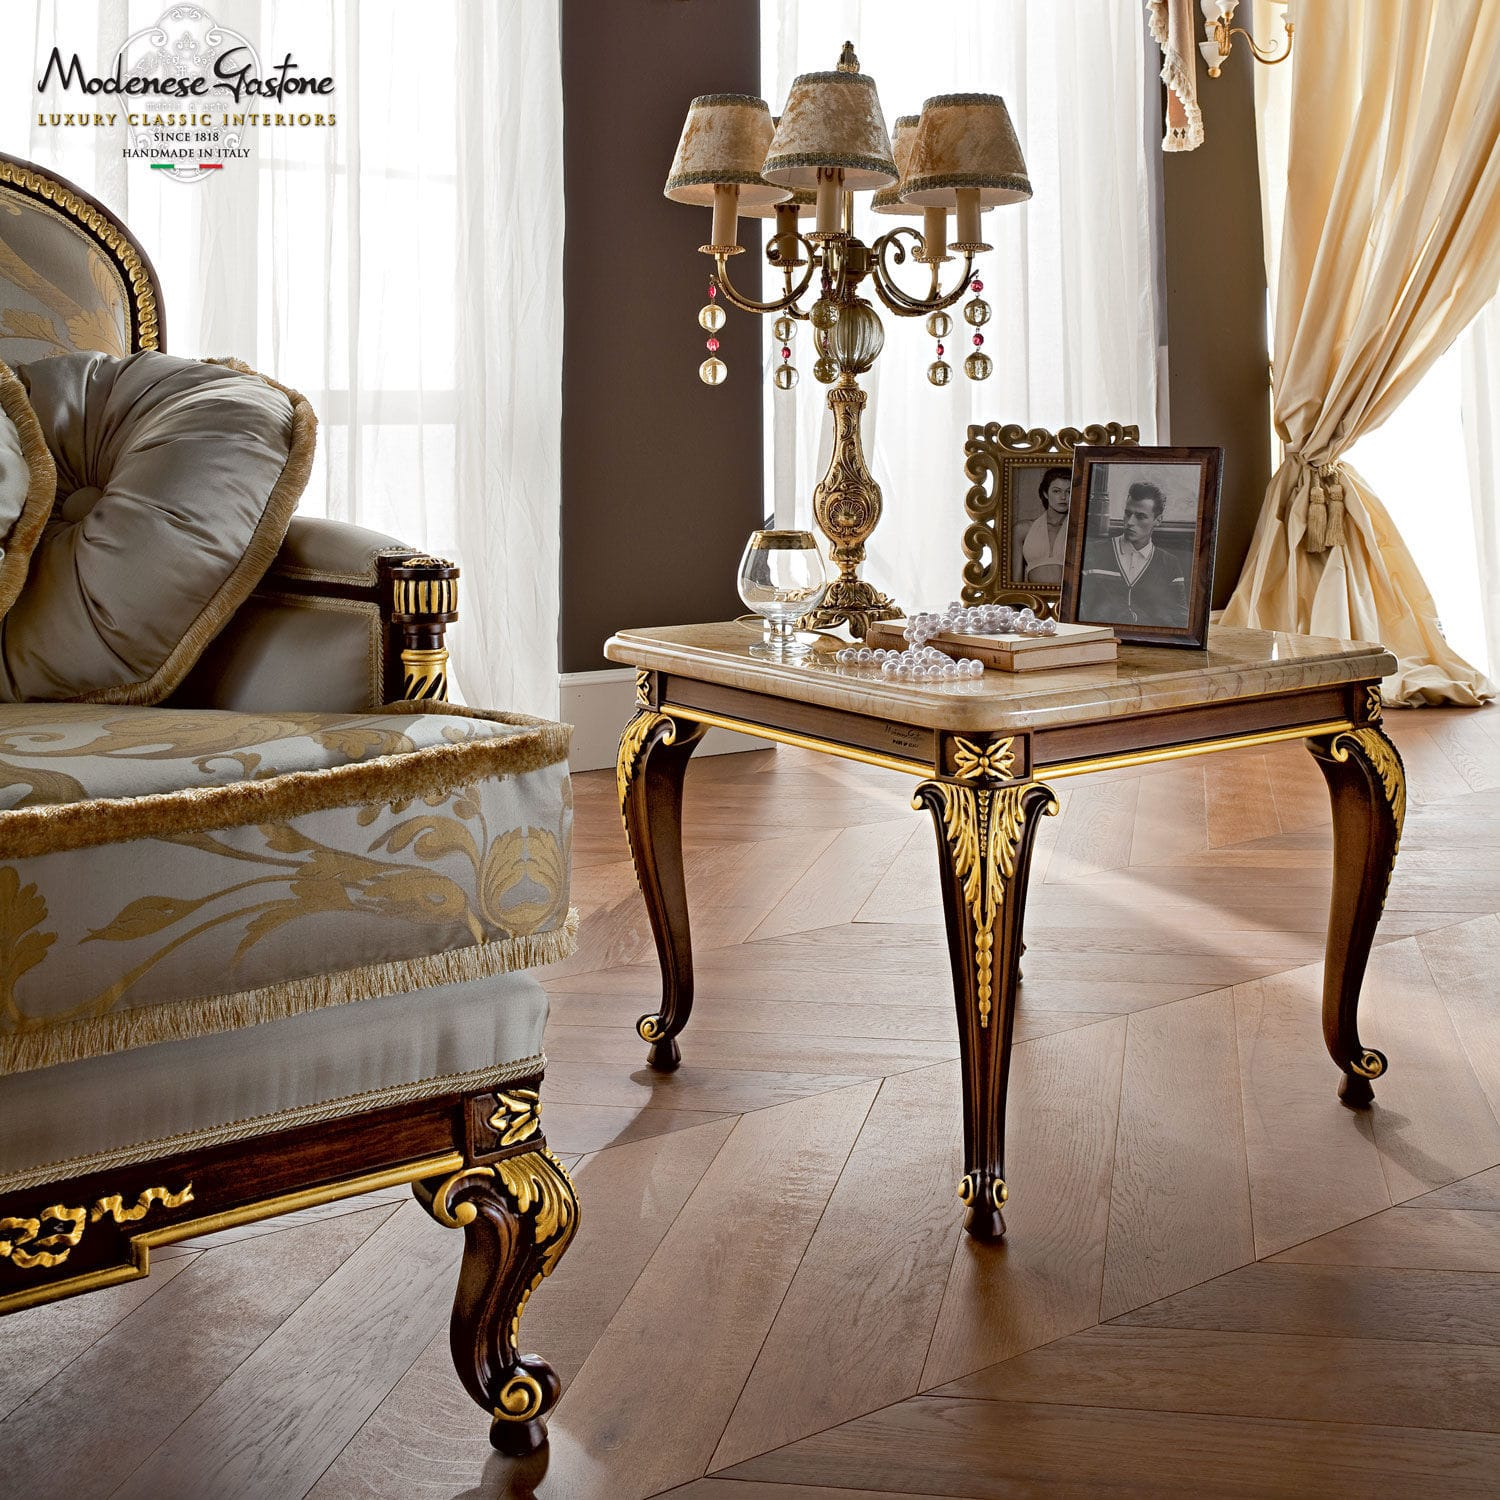 classic furniture ... classic side table / wooden / metal / marble casanova modenese gastone FXMHULL